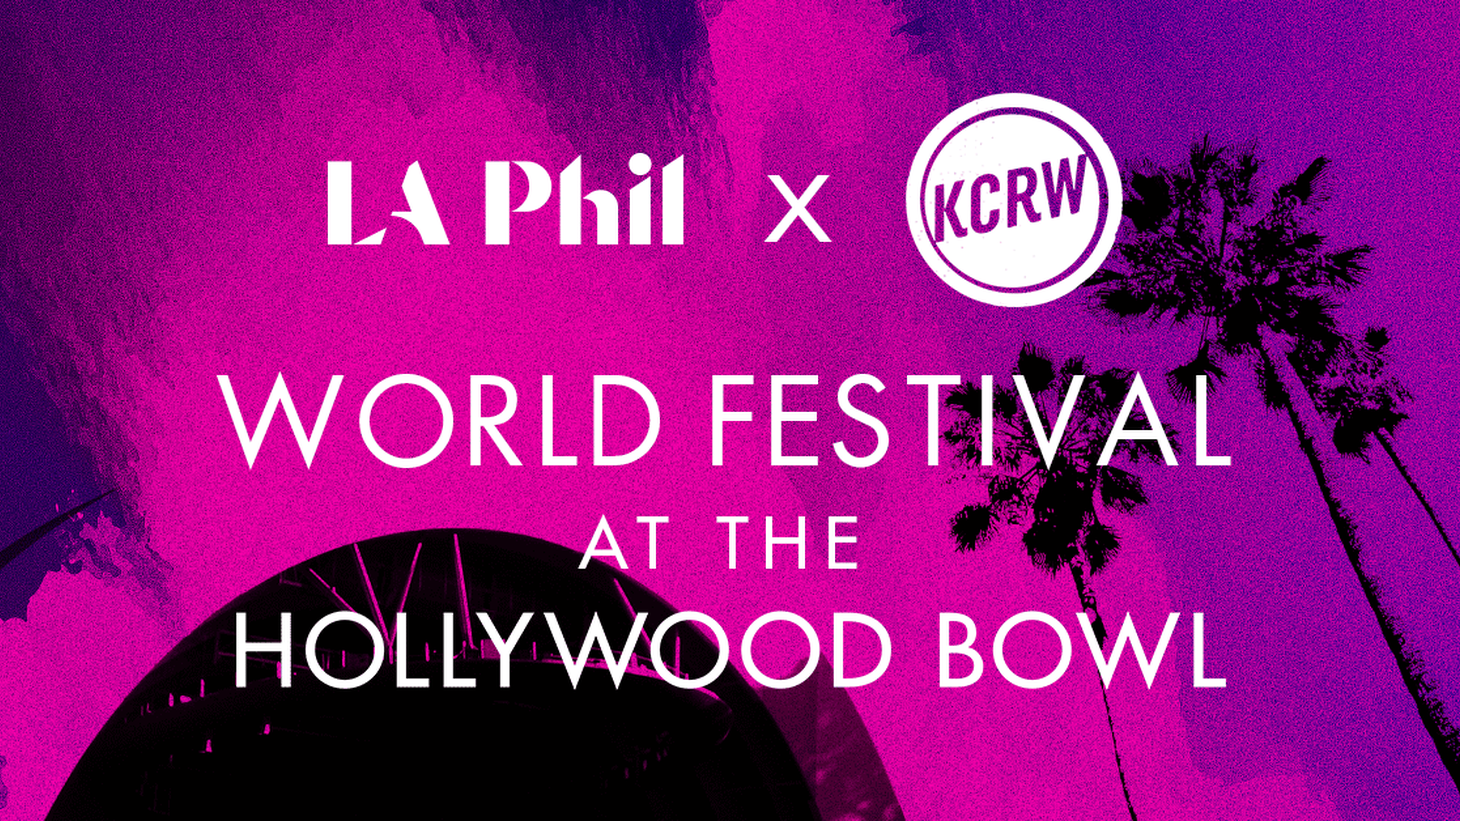 These Hollywood Bowl performances are special one-time only broadcasts. Join us this Sunday at 6 p.m. PT for another evening of live music.